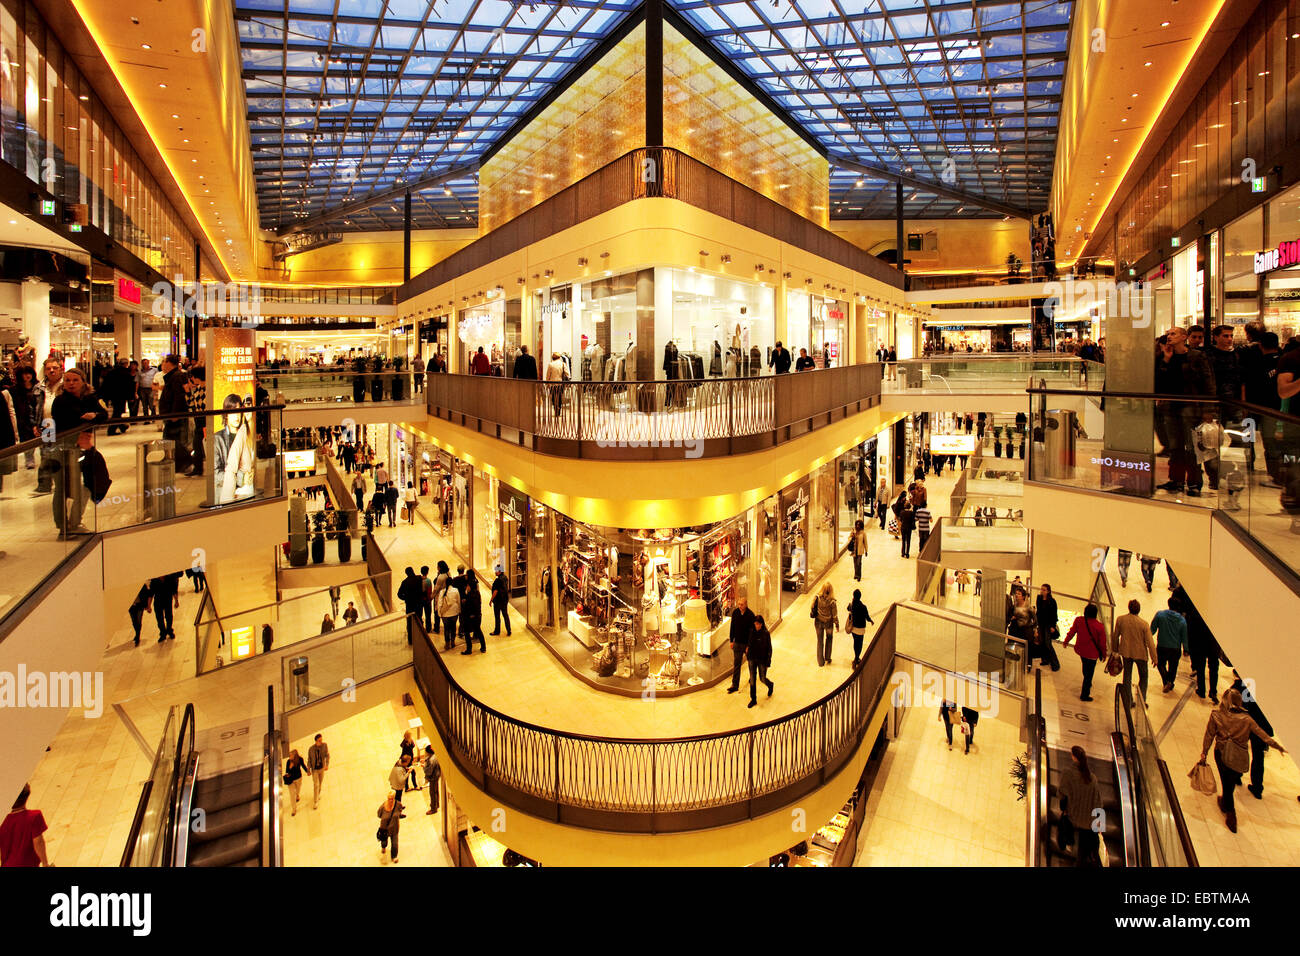 Dortmund Shopping Center Mall Thier Galerie Dortmund Thier Stockfotos And Mall Thier